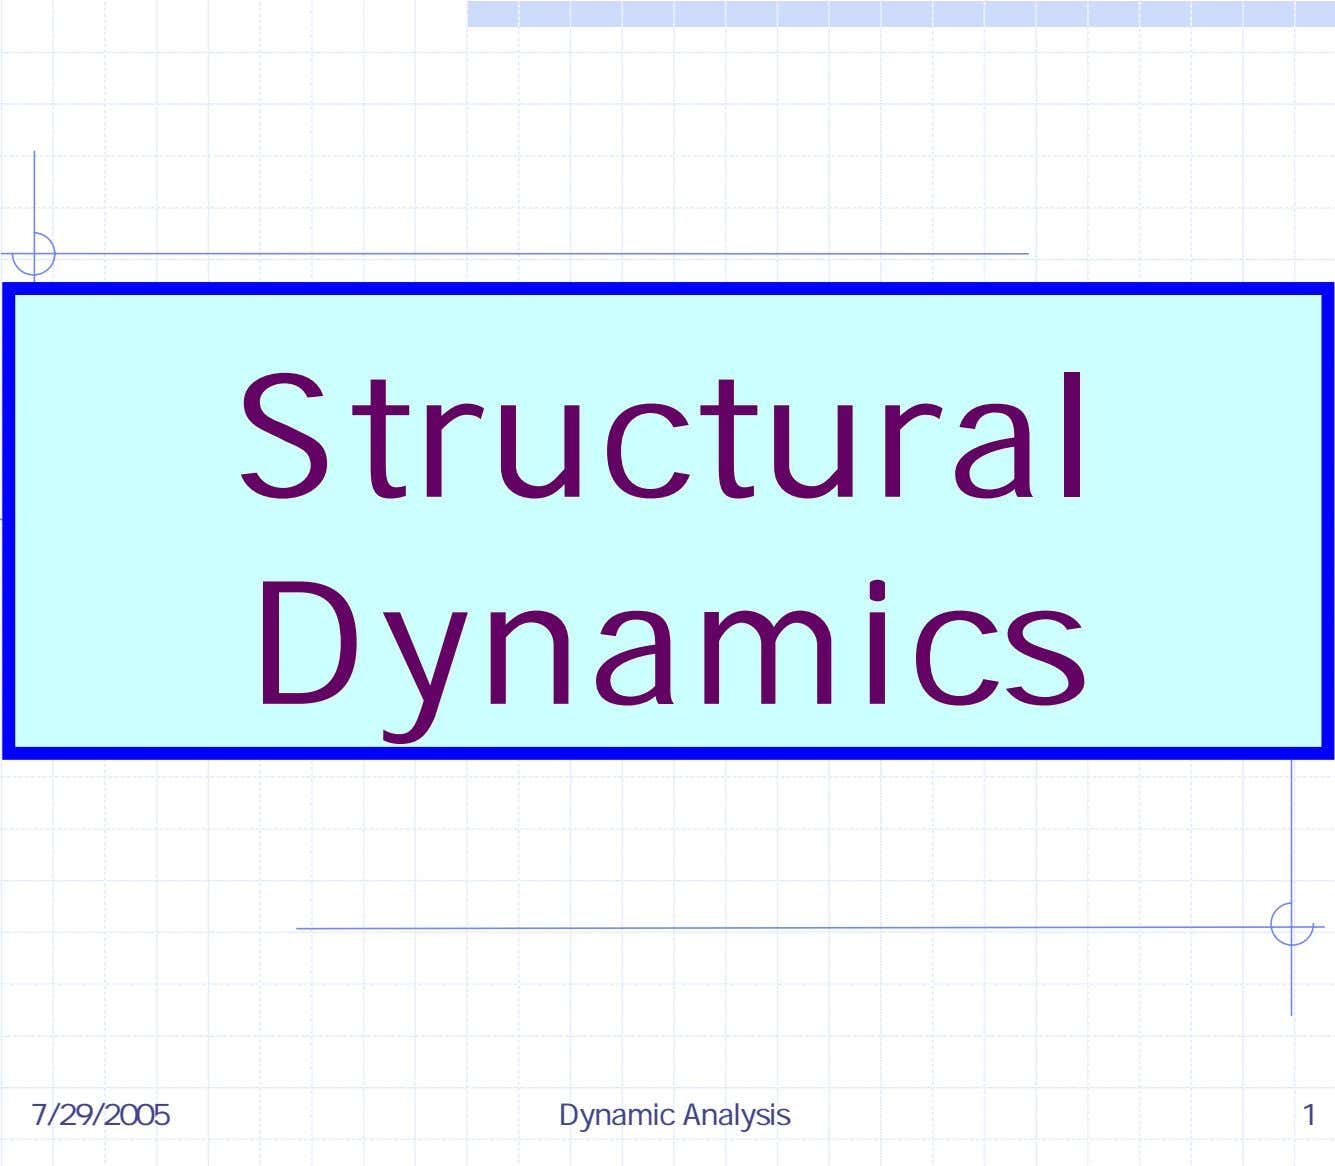 Structural Dynamics 7/29/2005 Dynamic Analysis 1